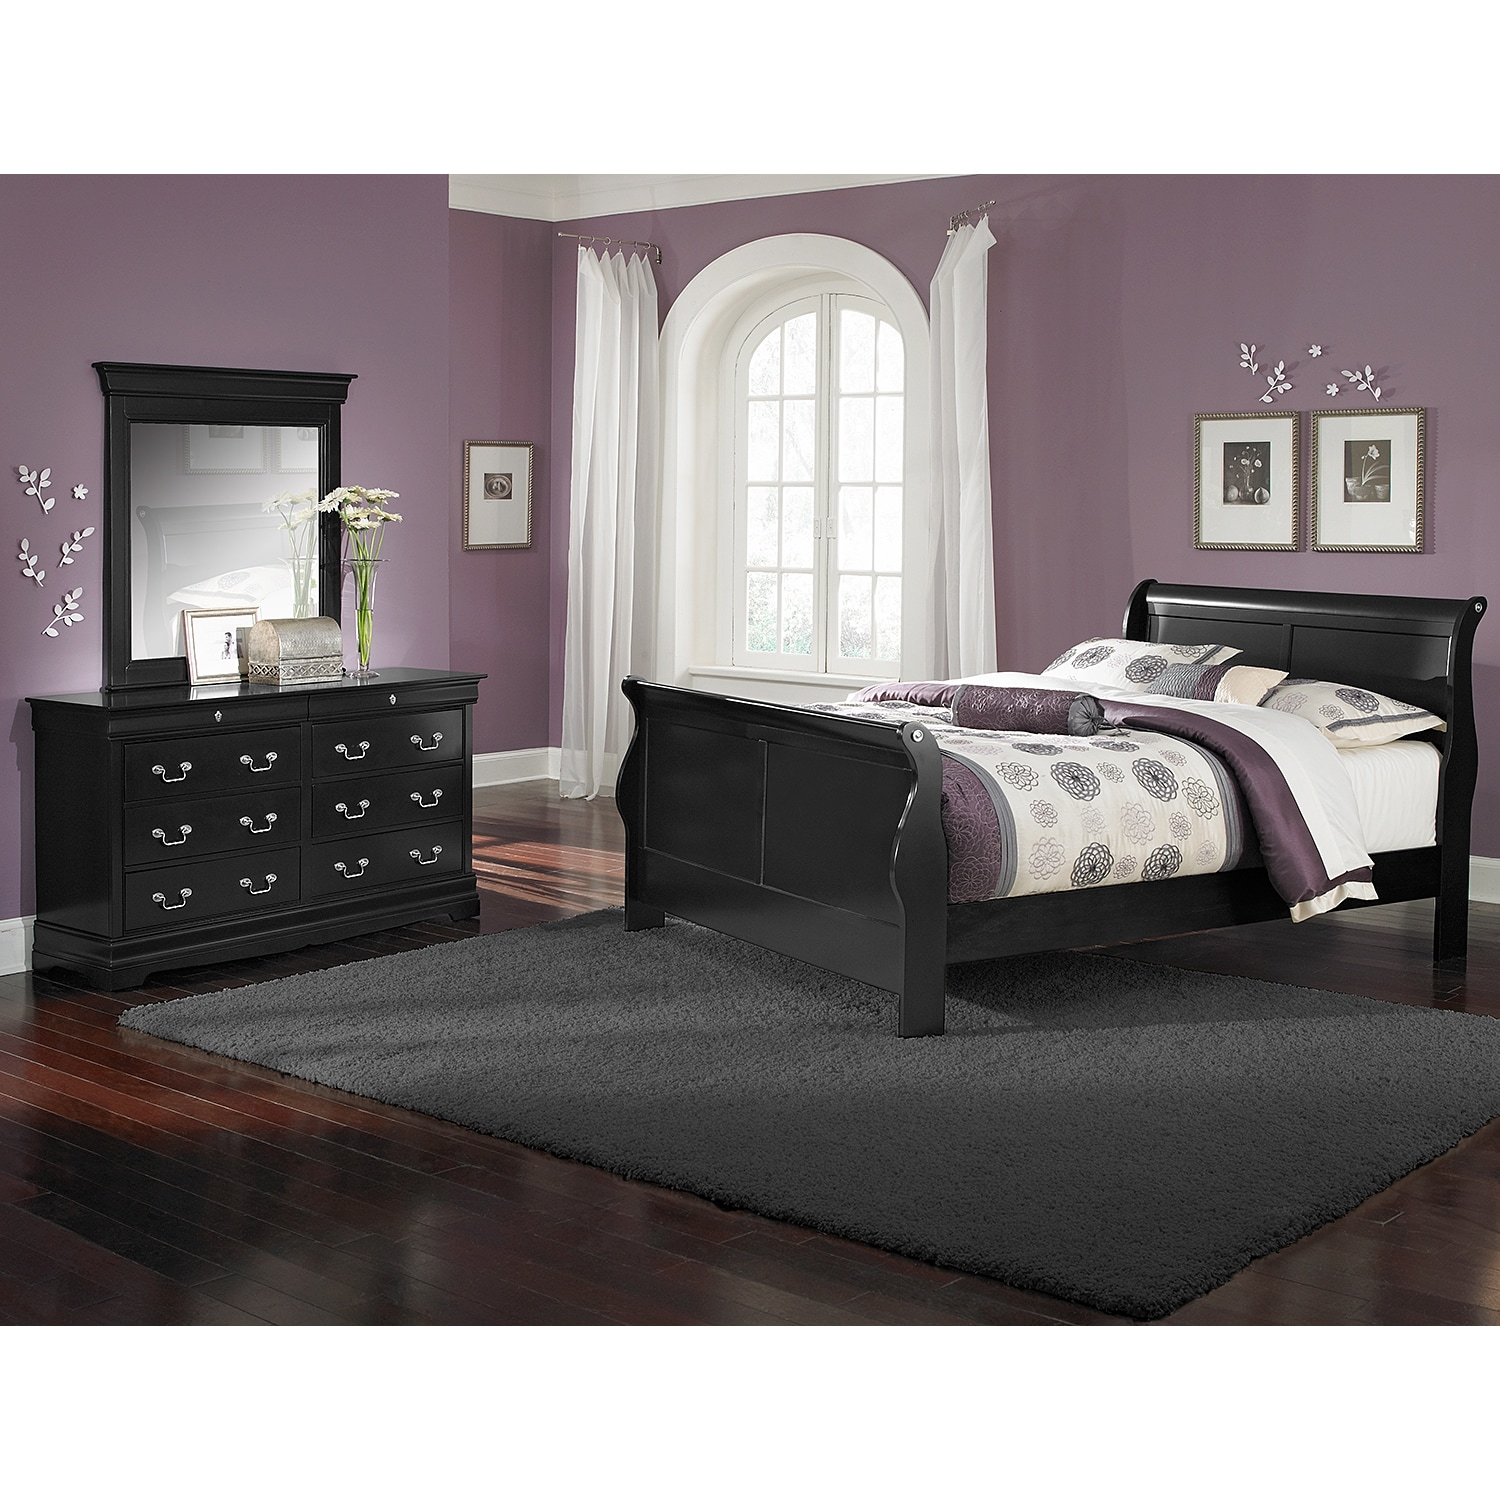 [Neo Classic Black II 5 Pc. Full Bedroom]